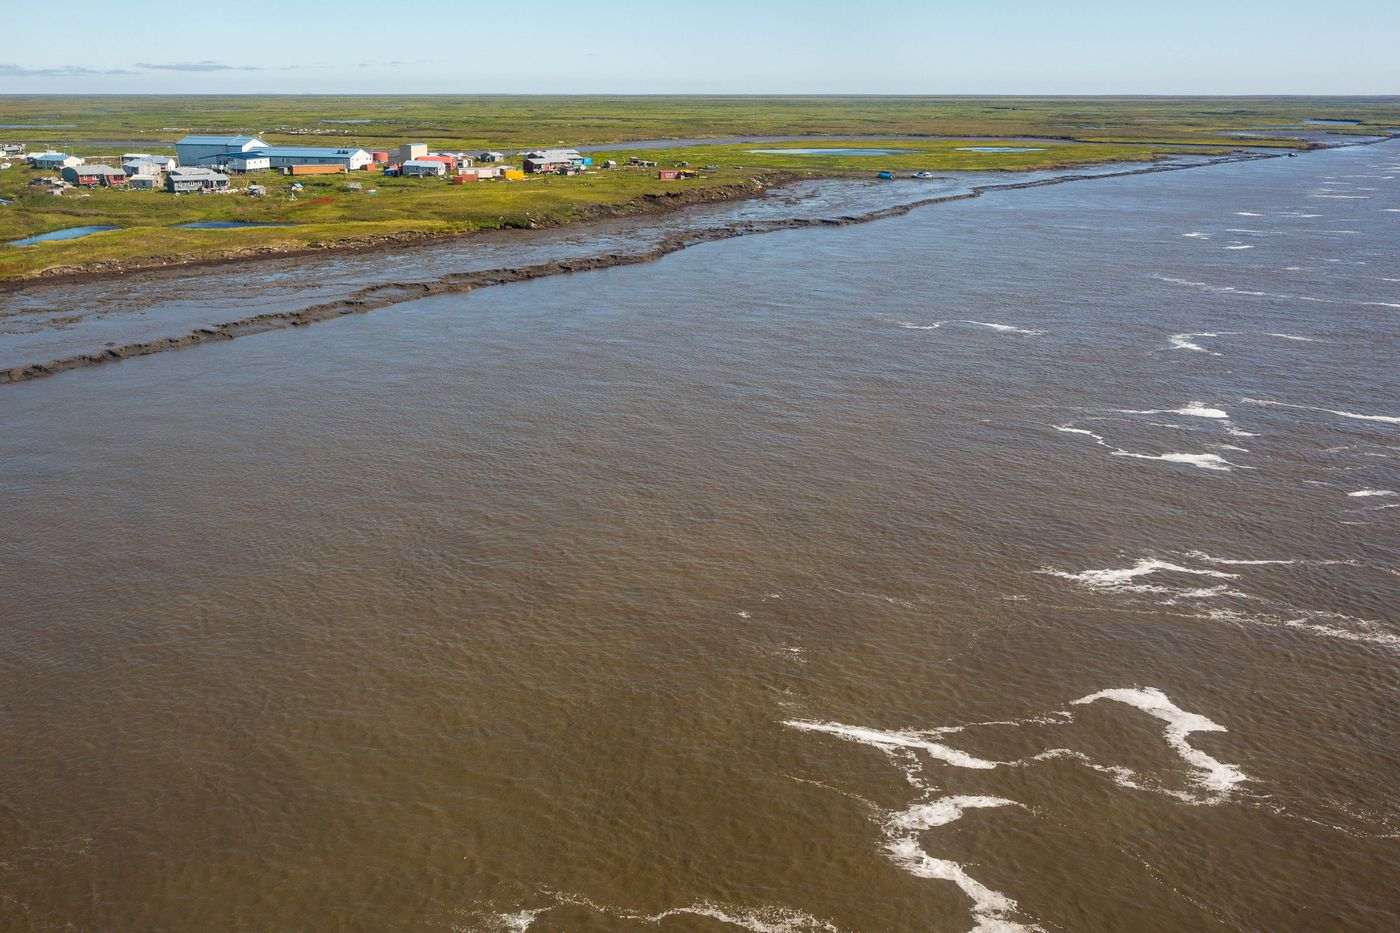 The village of Newtok, in southwest Alaska, on Tuesday, August 4, 2015. The community has lost three miles of shoreline to the Ninglick River over the past 60 years, and is in the process of moving to a new site on higher ground 9 miles away.